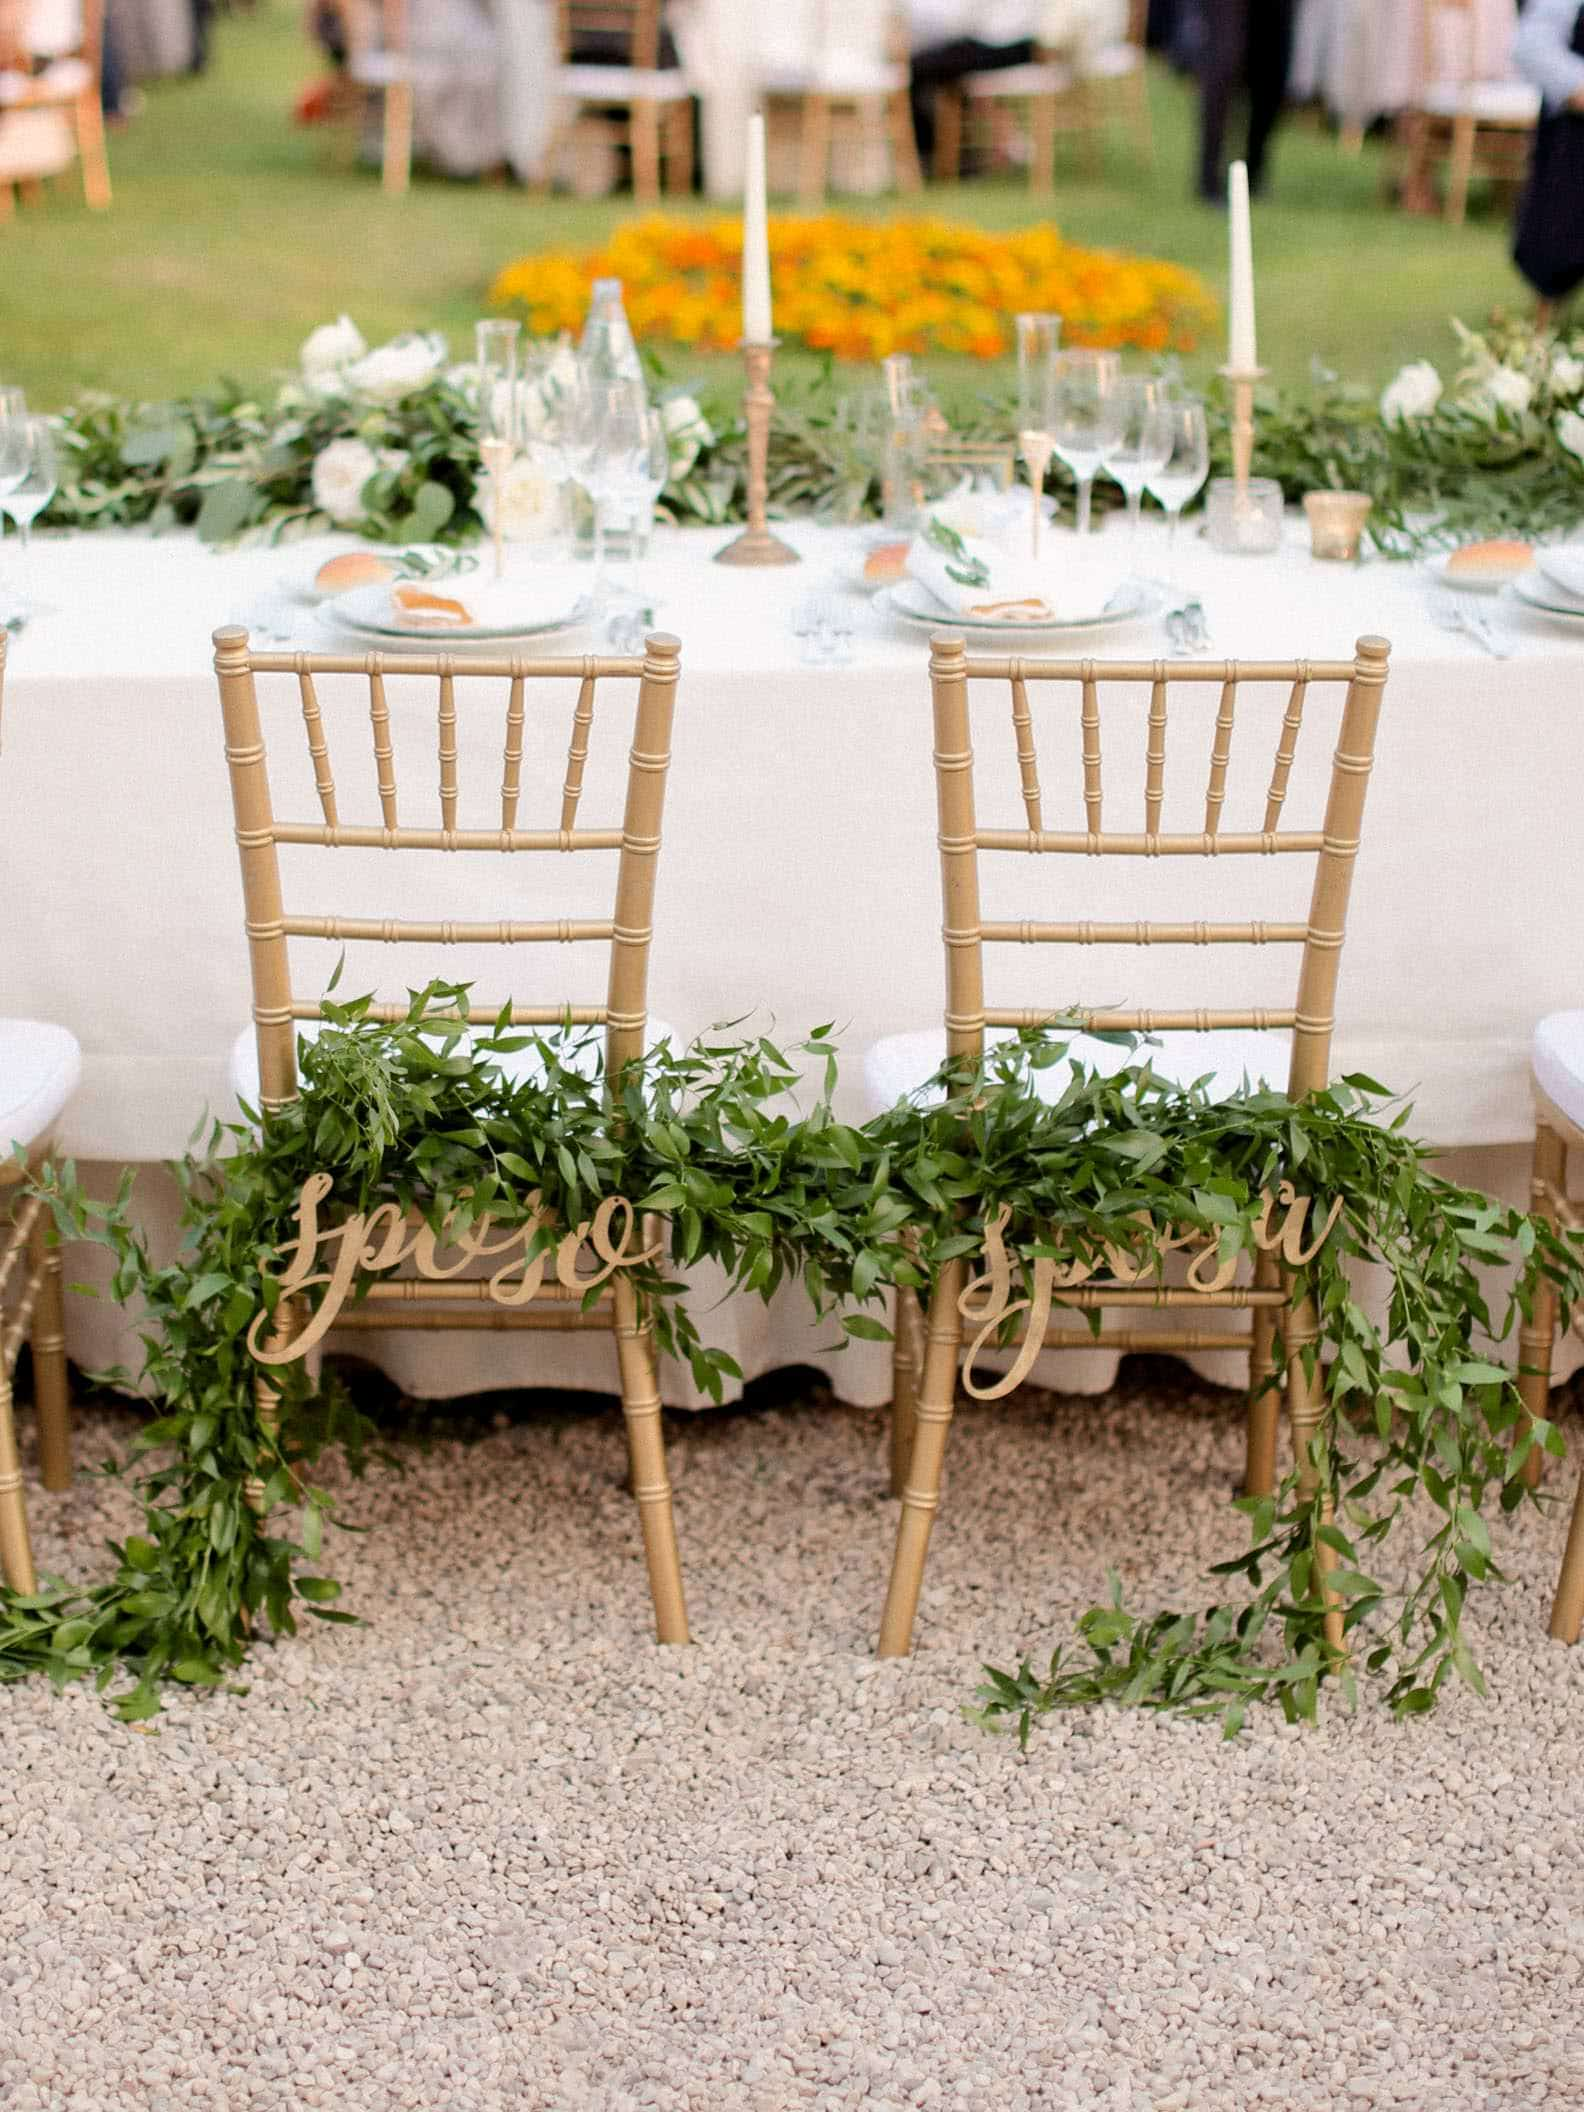 adorned chairs for bride and groom